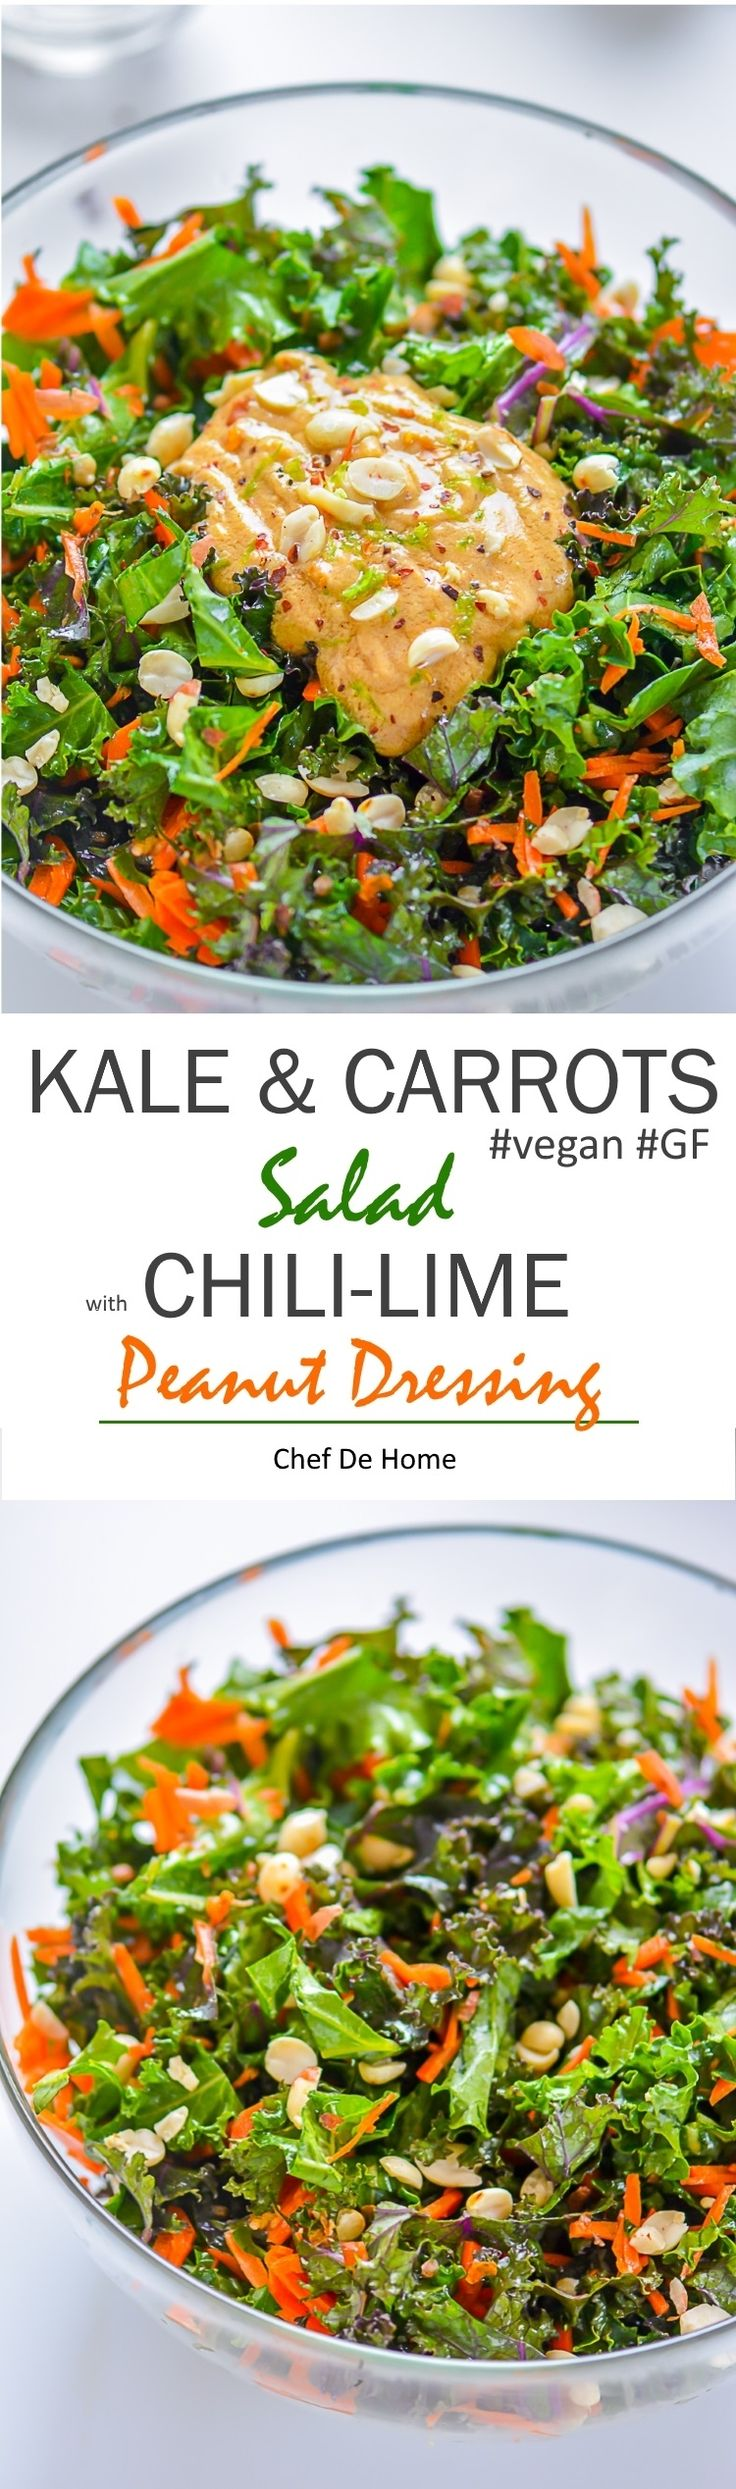 Healthy Vegan Kale and Carrot Salad dressed in vegan and gluten free chili lime peanut dressing   chefdehome.com